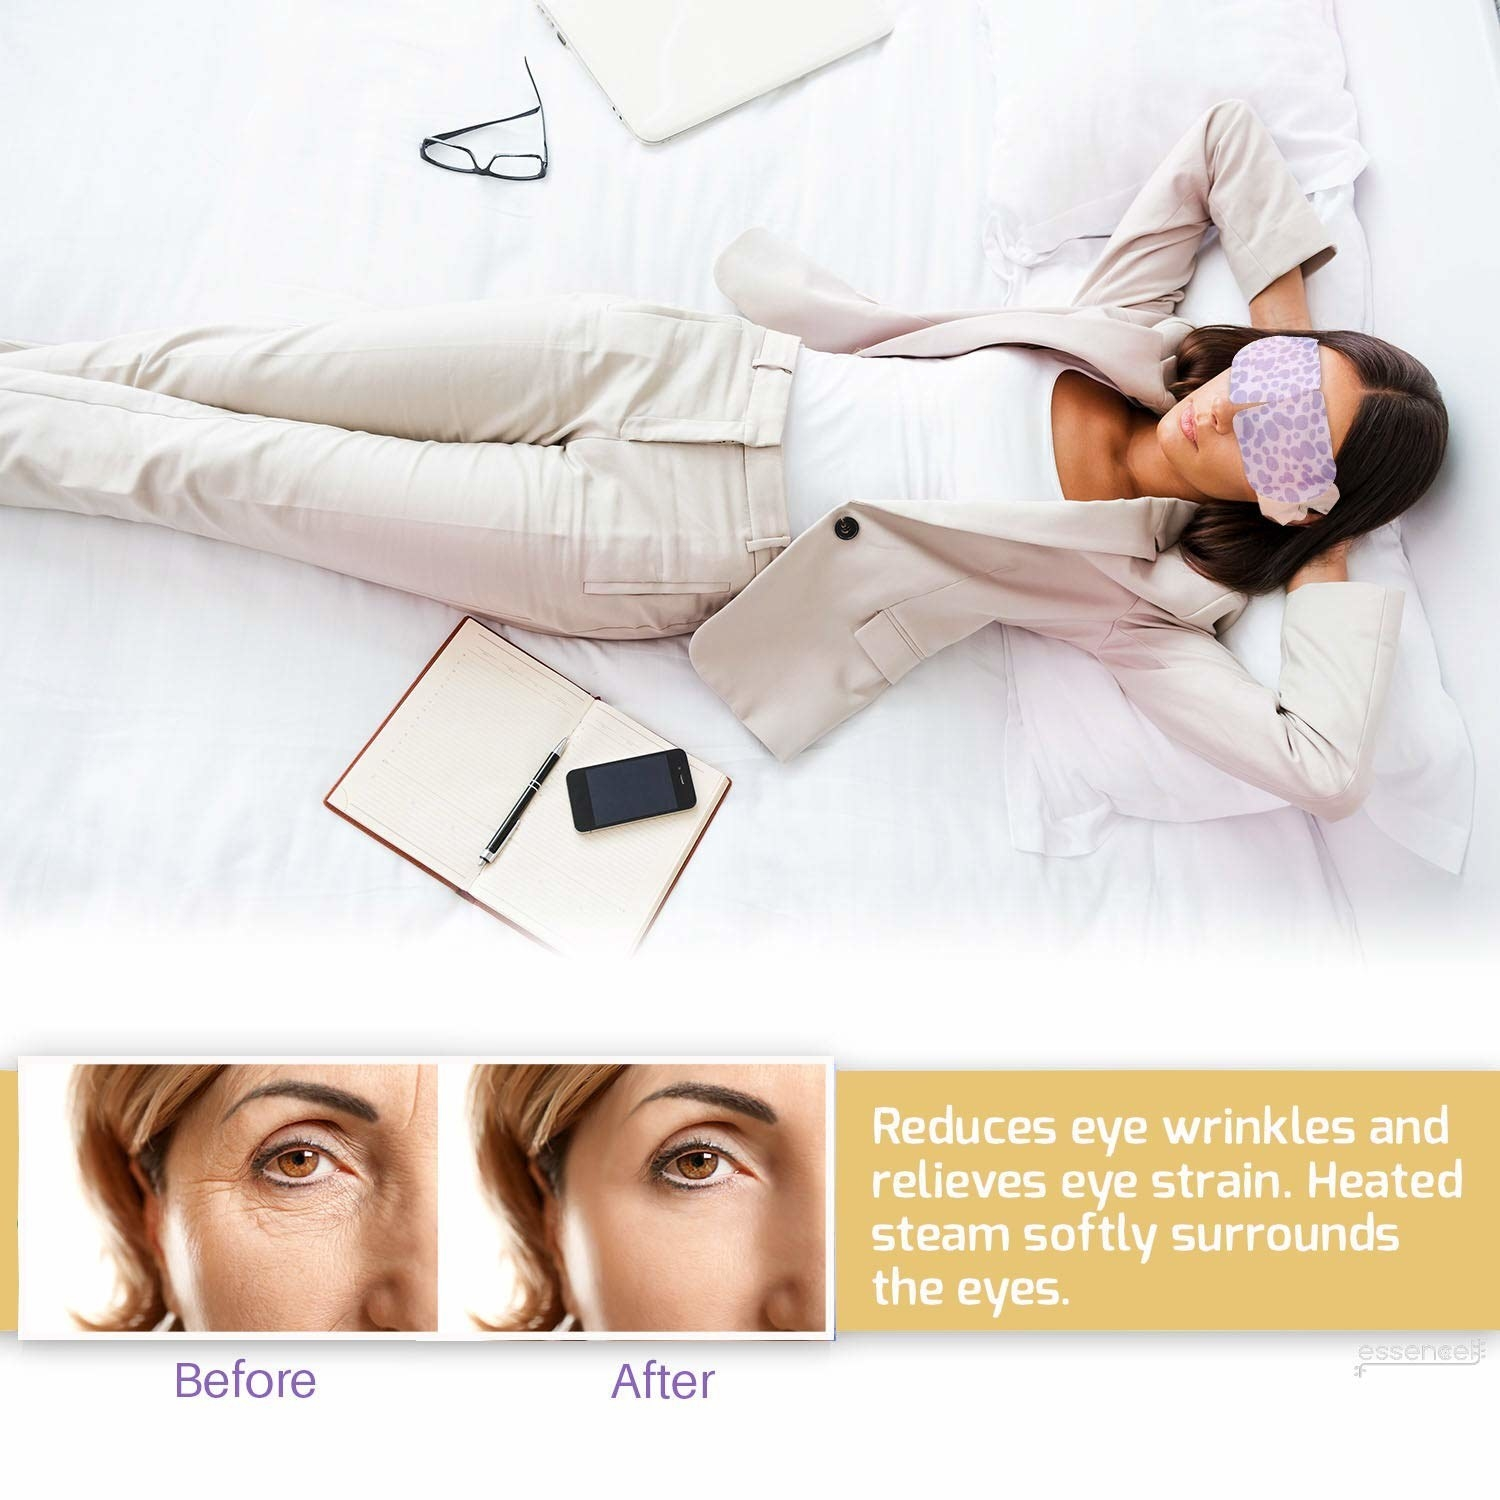 """They're also scented (you can pick from jasmine, lavender, rose, or unscented) to help you ~relax~. Promising review: """"I've used several brands of these warm eye masks. I like this one the best. It retains the warmth longer — usually 30 minutes compared to 15 -20 for the others. I use these at night. It can really reduce the stress of my eyes. It's very comfortable and warm. I use it before I go to bed. It's really helpful and helps me get to sleep."""" —Bo ZhuGet a pack of 10 from Amazon for $12.99+ (available in four scents)."""